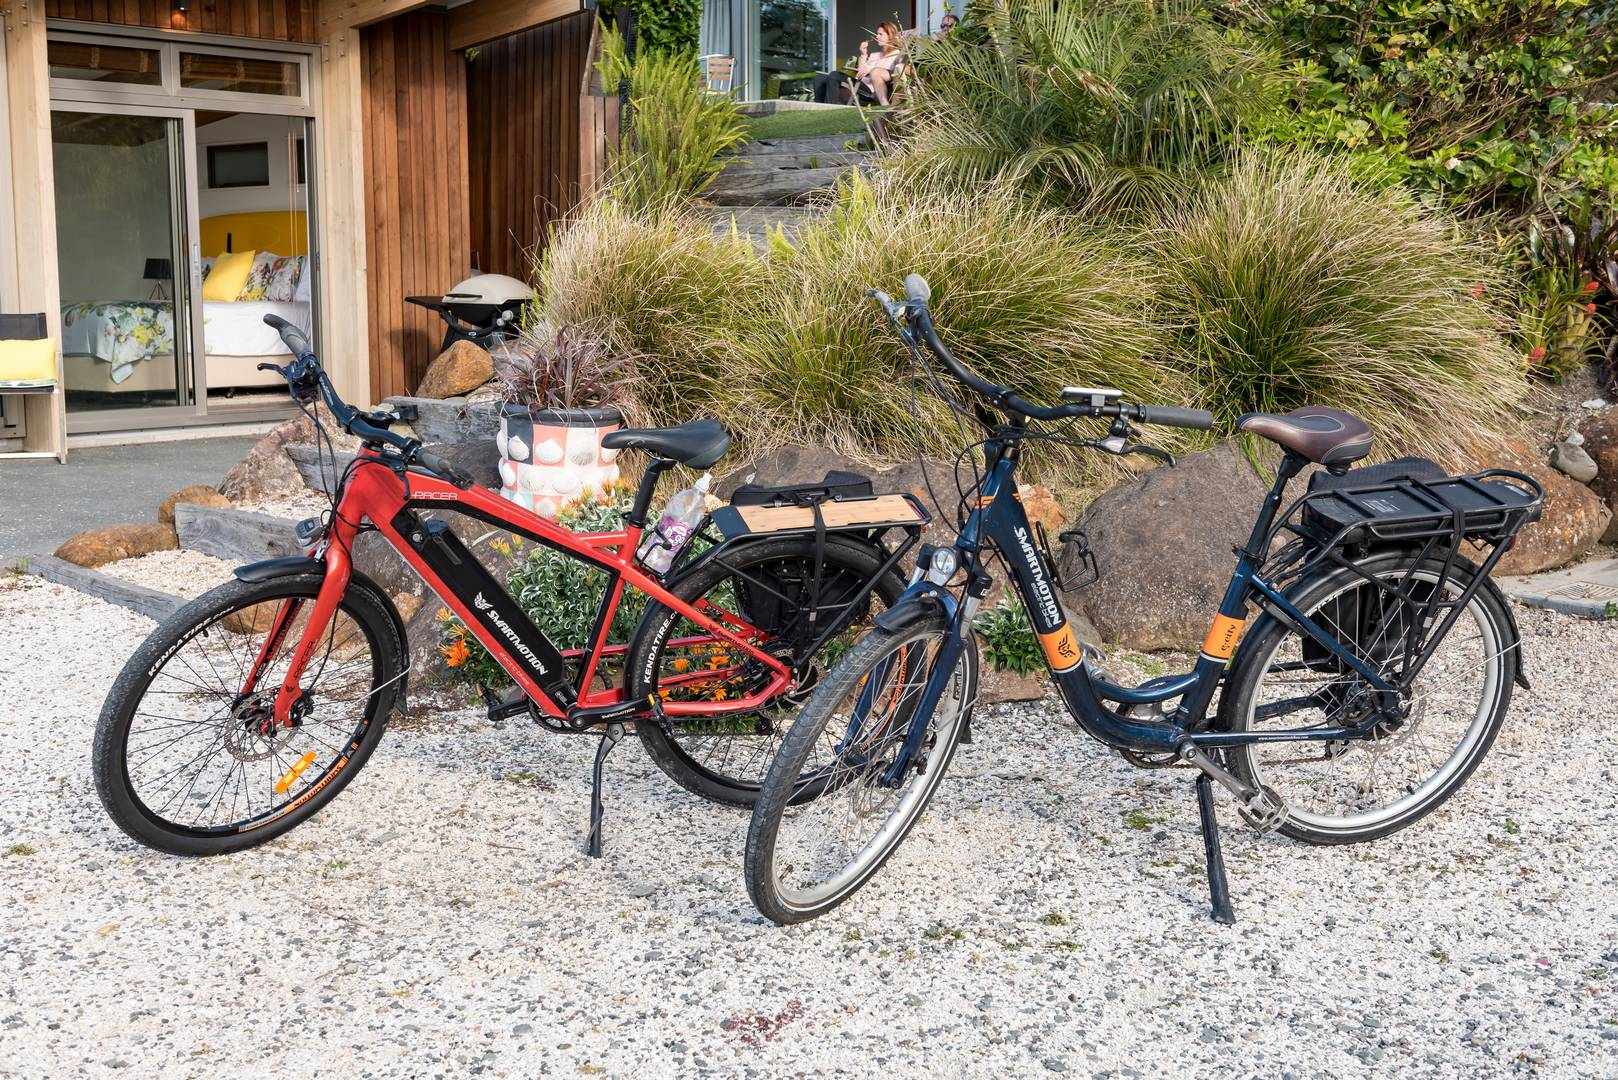 Bicycles at the Golden Sand beachfront accommodation